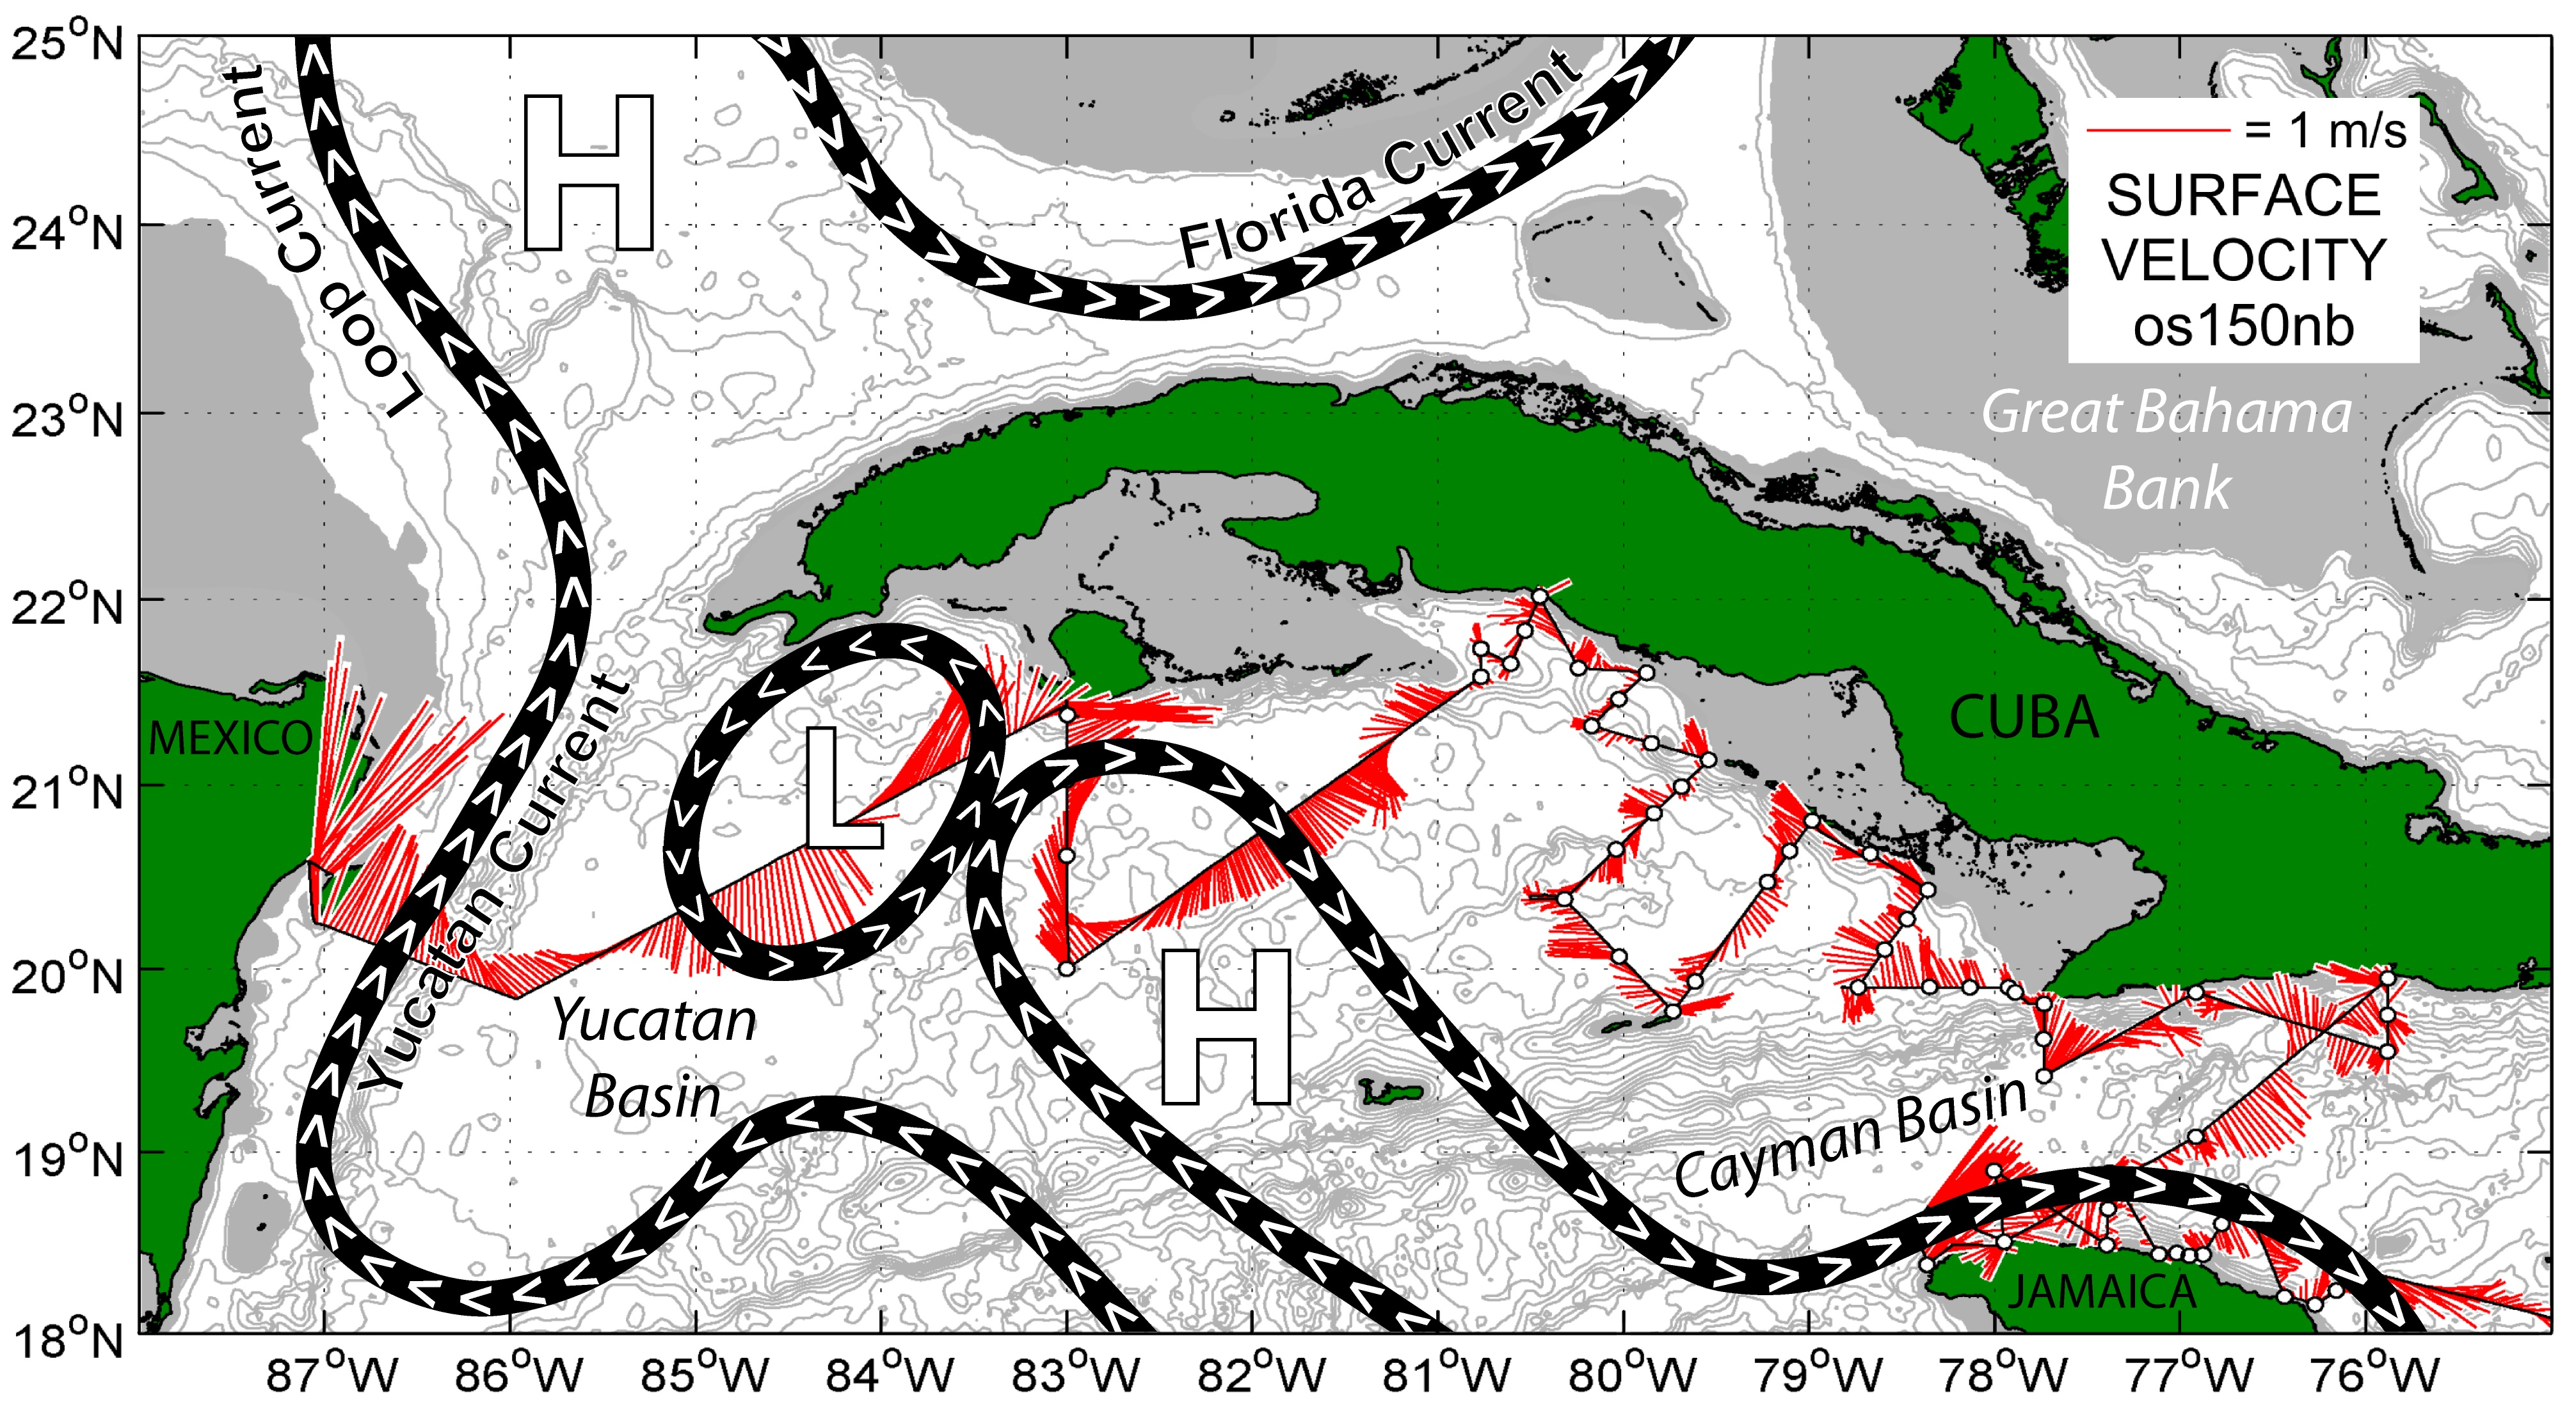 This map shows surface current velocity vectors (in red) measured with the NOAA Ship Nancy Foster's hull-mounted acoustic Doppler current profiler (ADCP) between April 26 - May 5, 2015.  A schematic of the currents is also presented (based on satellite altimetry for the period).  The white dots along the survey track indicate locations where oceanographic measurements were made and where net tows to collect larval fish were conducted. Credit: NOAA